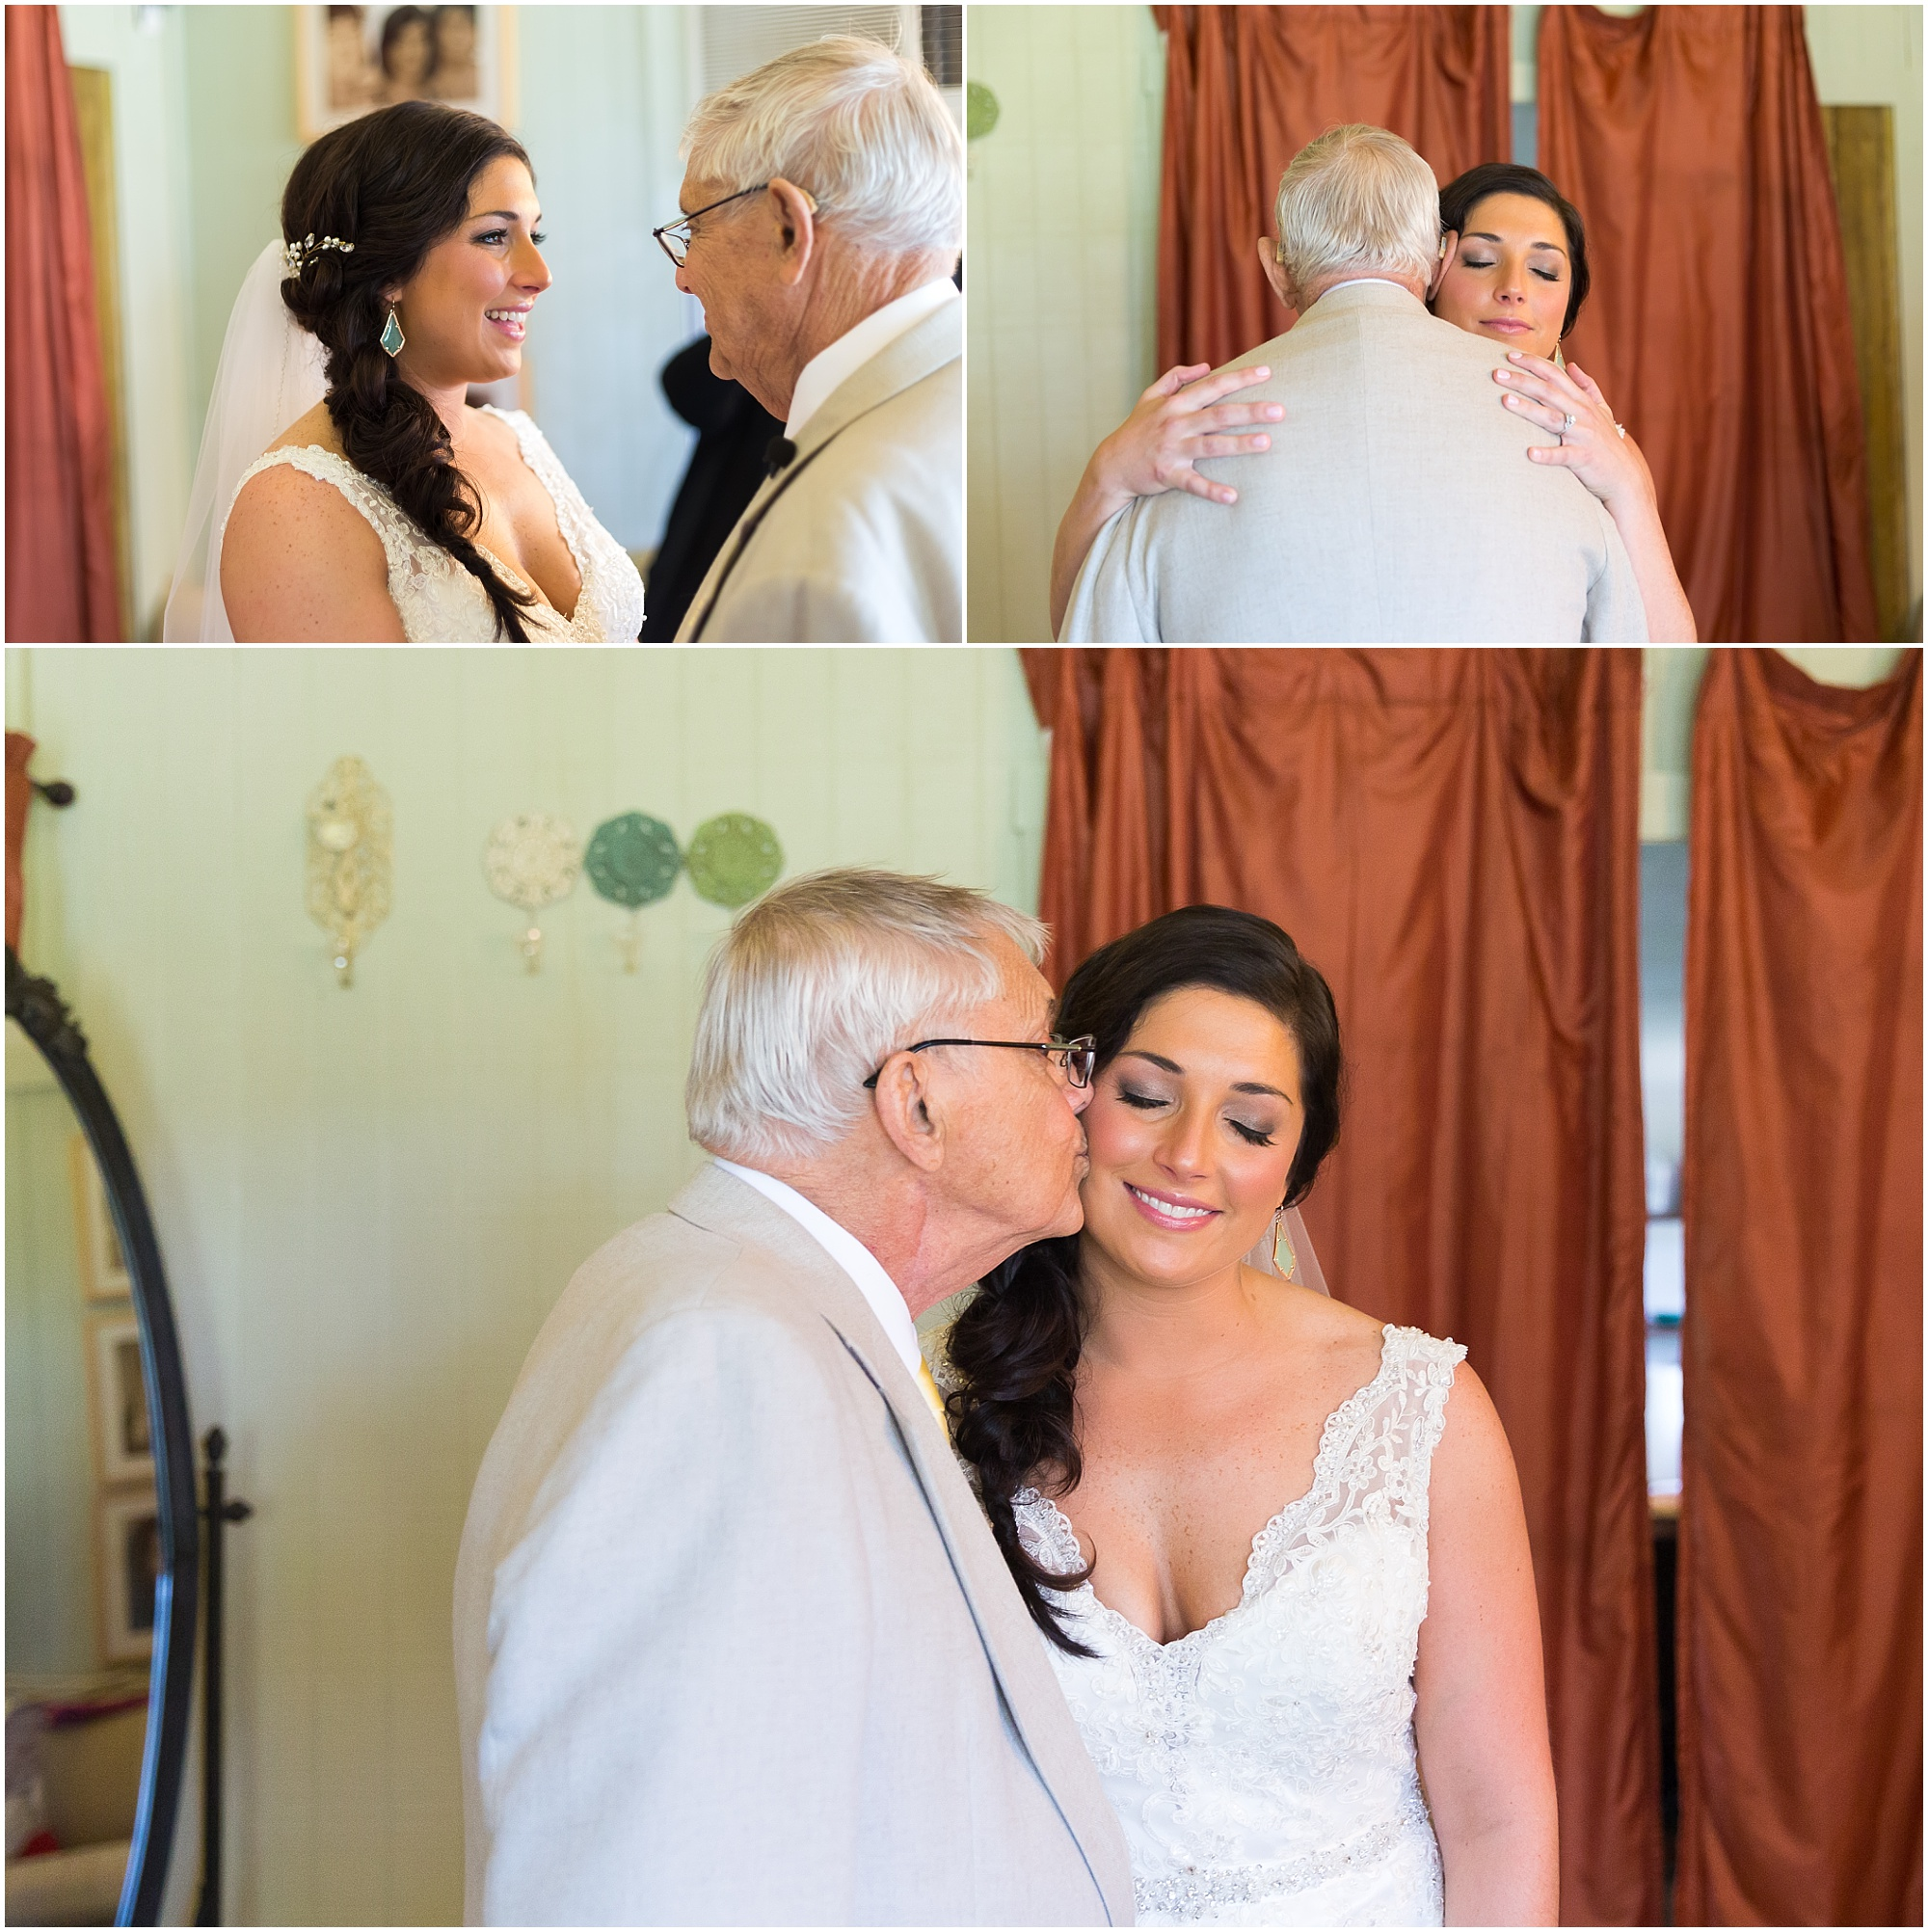 Father of the bride kisses her cheek at their first look - Jason & Melaina Photography - www.jasonandmelaina.com